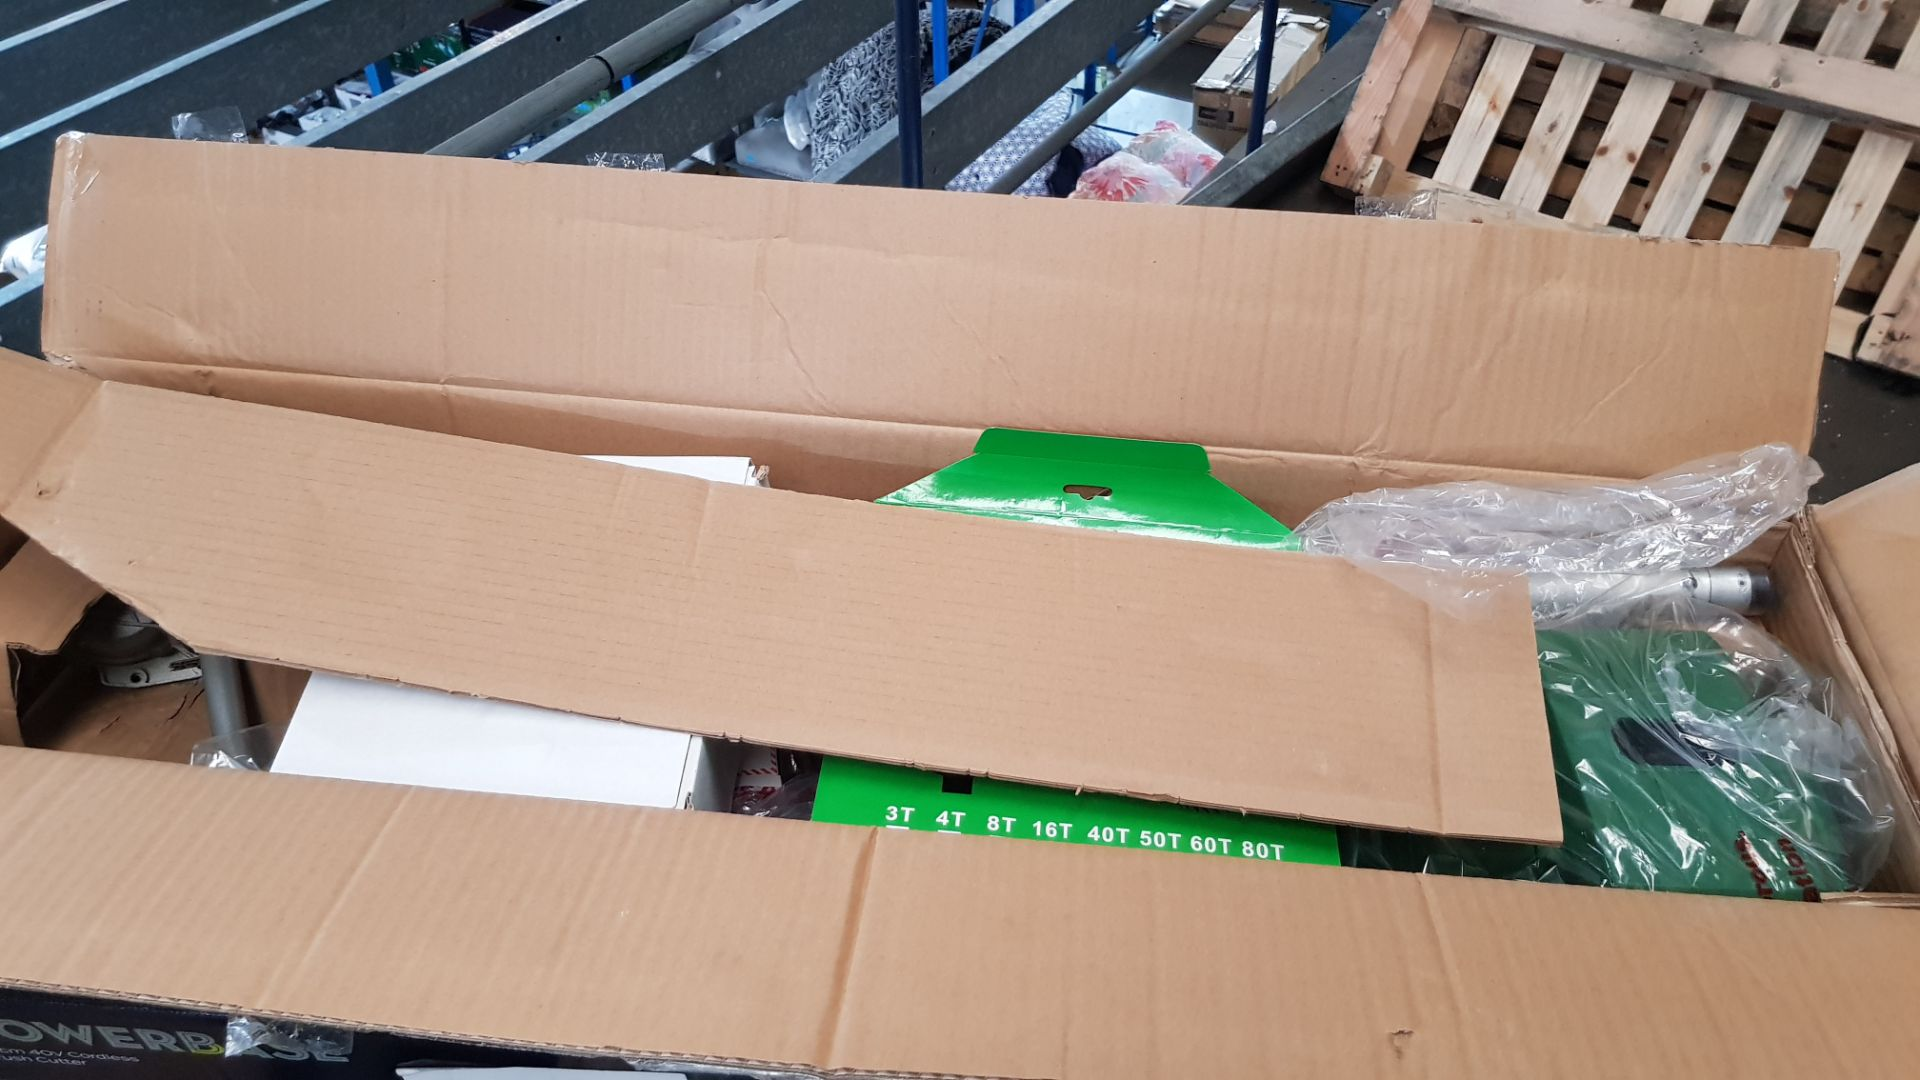 (P9) 1x Powerbase 34cm 40V Cordless Brush Cutter RRP £129. Contents Appear Clean, Unused With Batt - Image 4 of 6